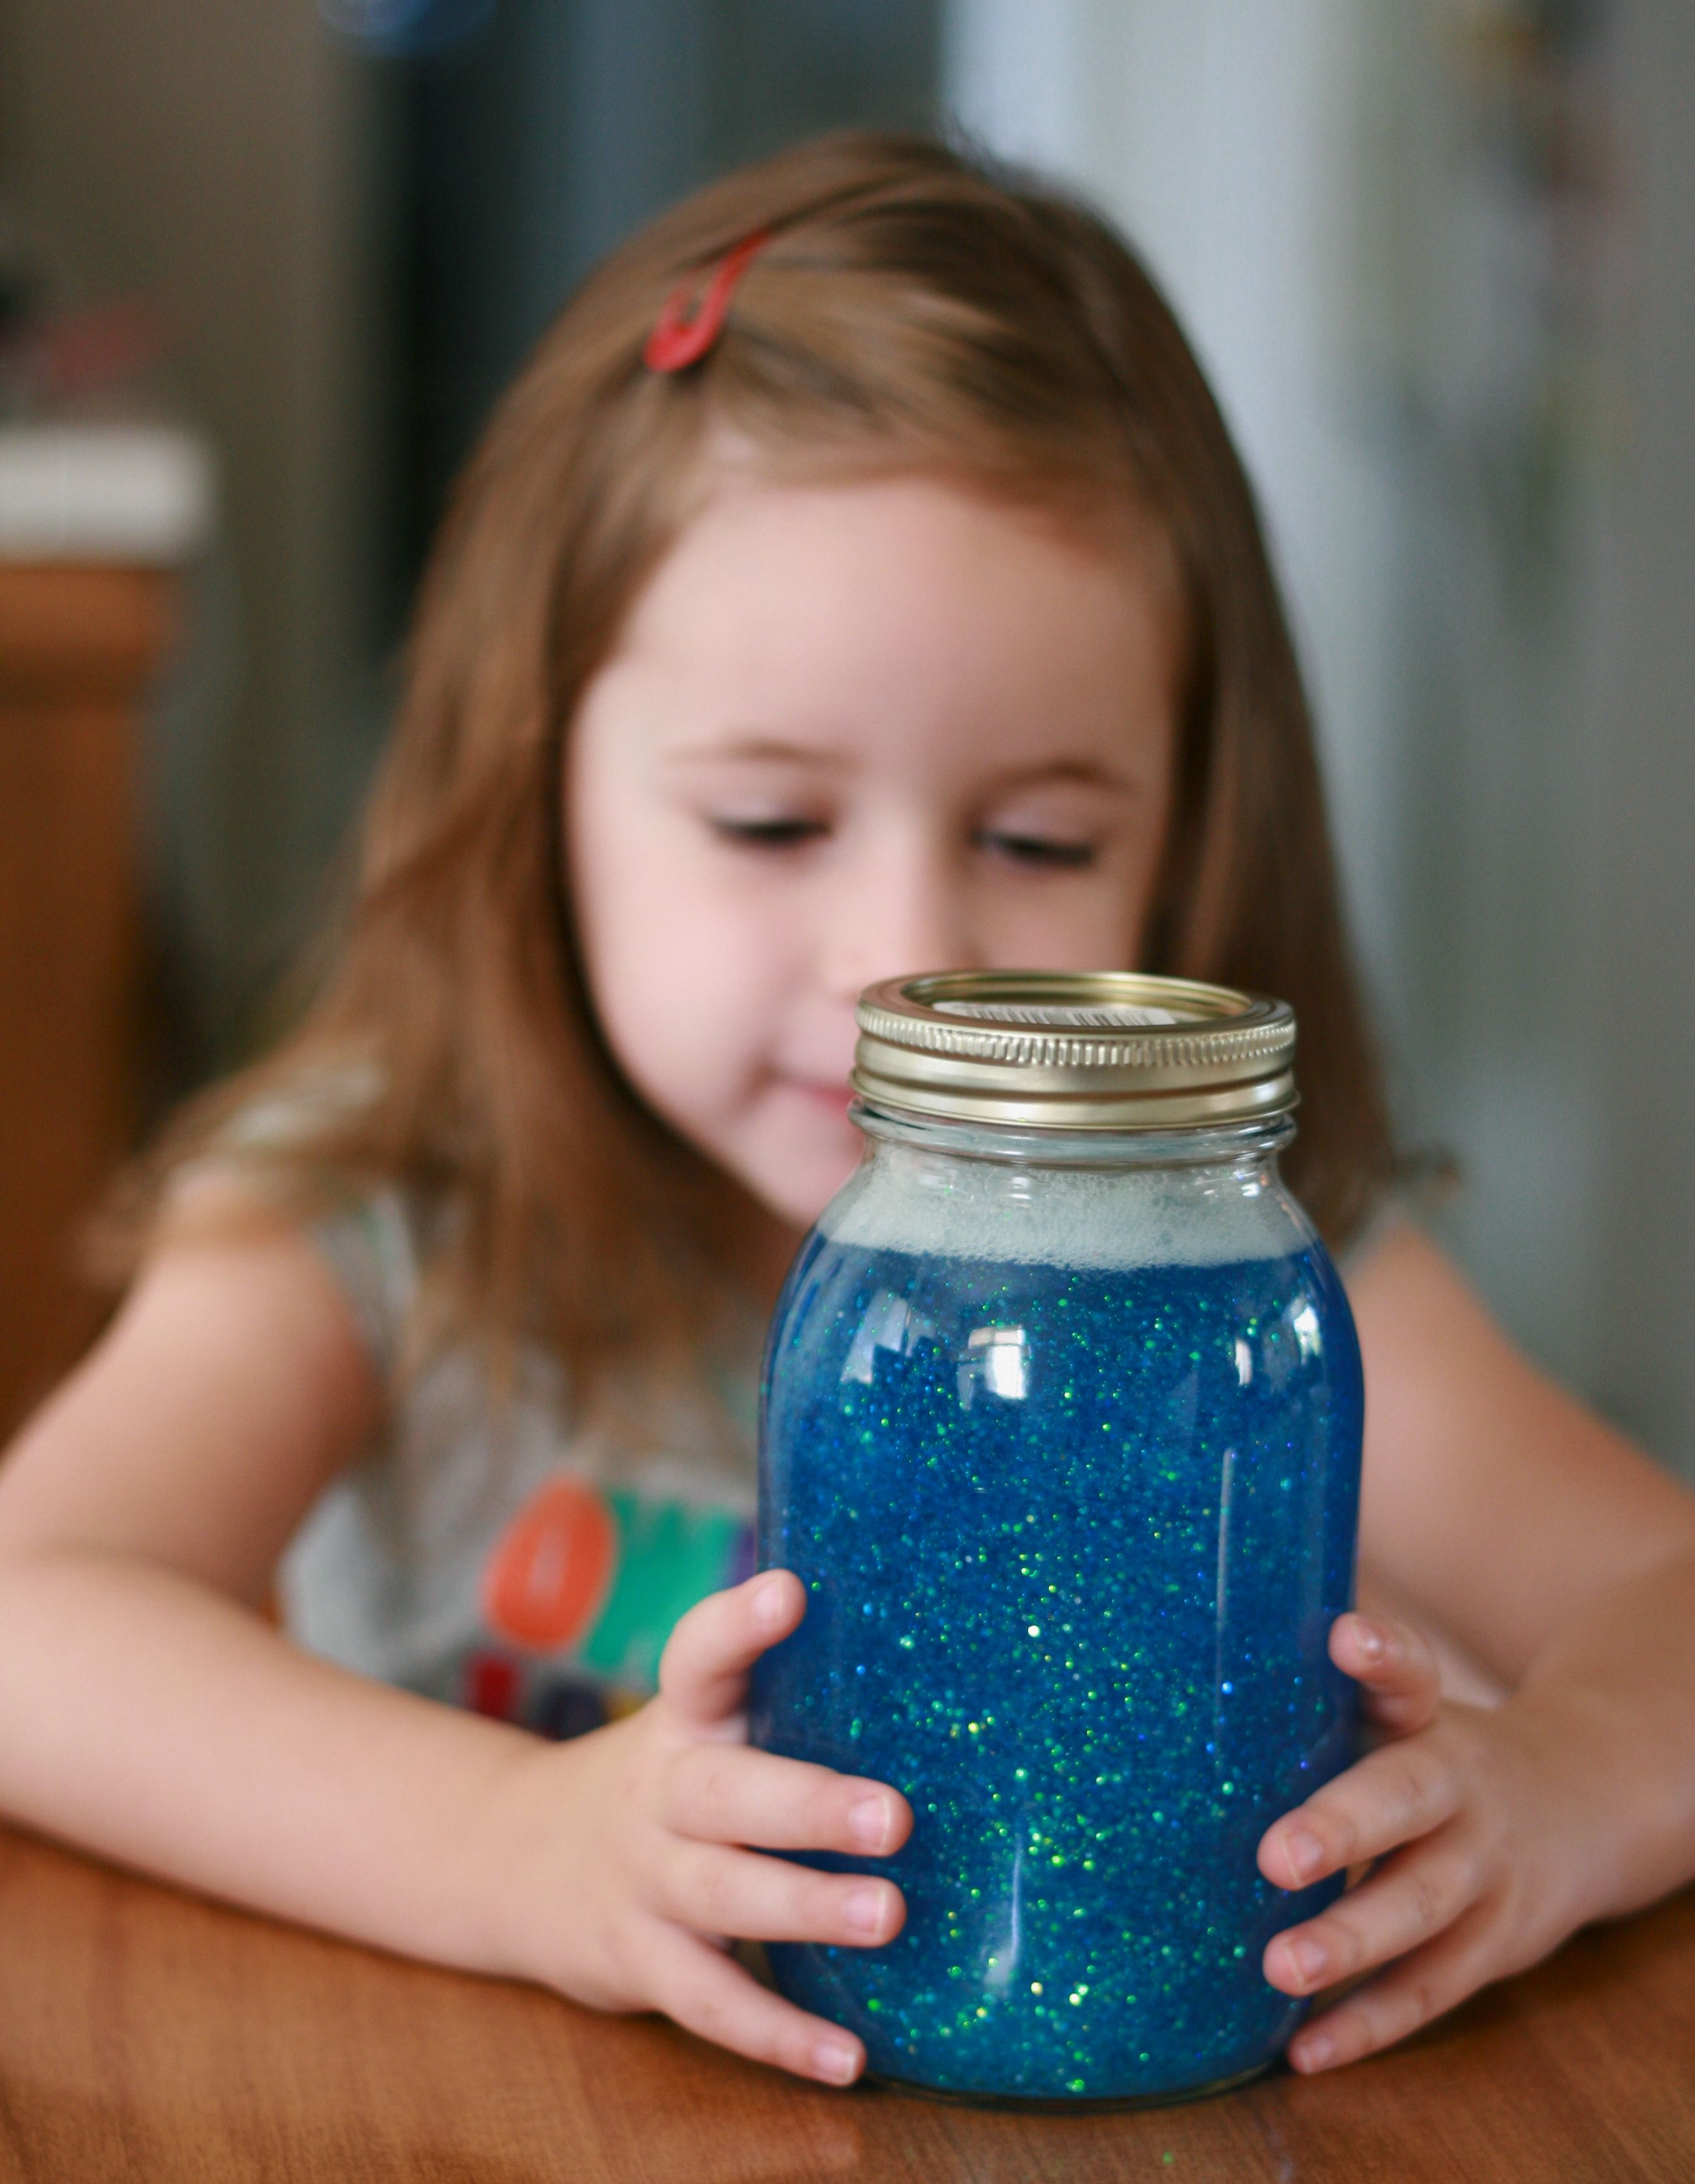 a 'calm down jar' - shake the jar and the child has to watch the jar until the glitter settles.